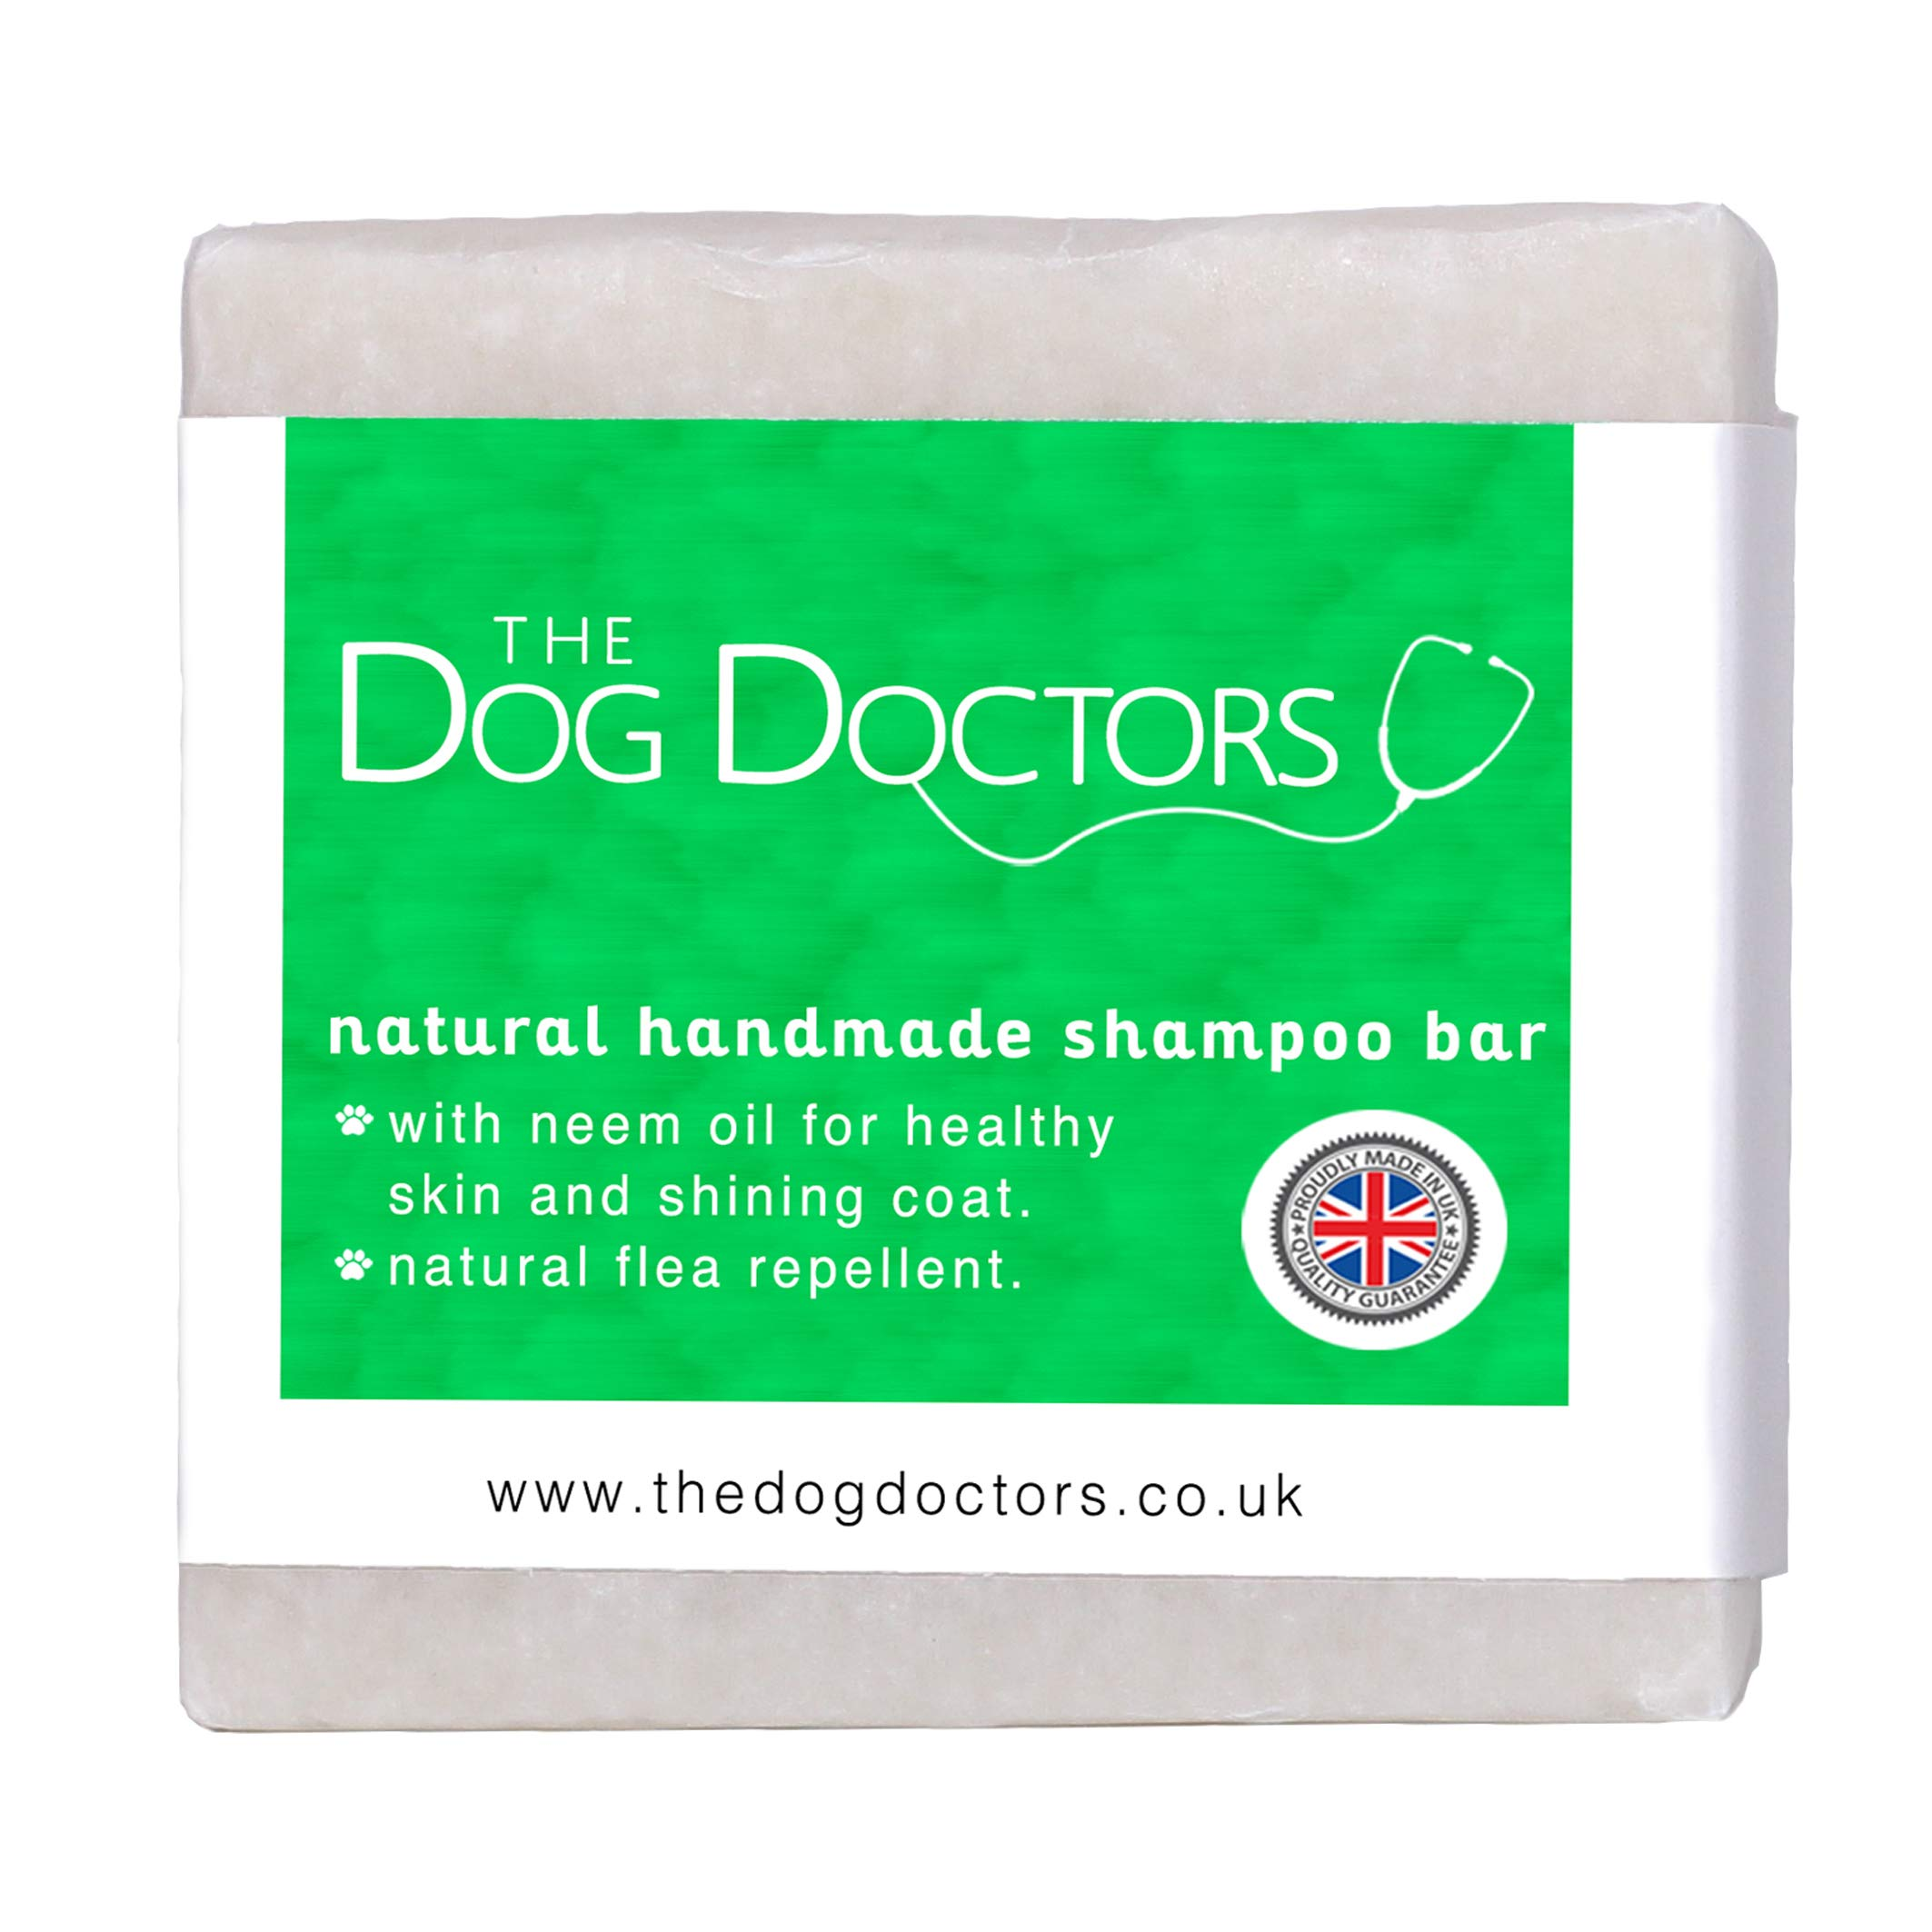 The Dog Doctors Tea Tree & Neem Oil Shampoo Bar 100% Natural Handmade In The Peak District UK